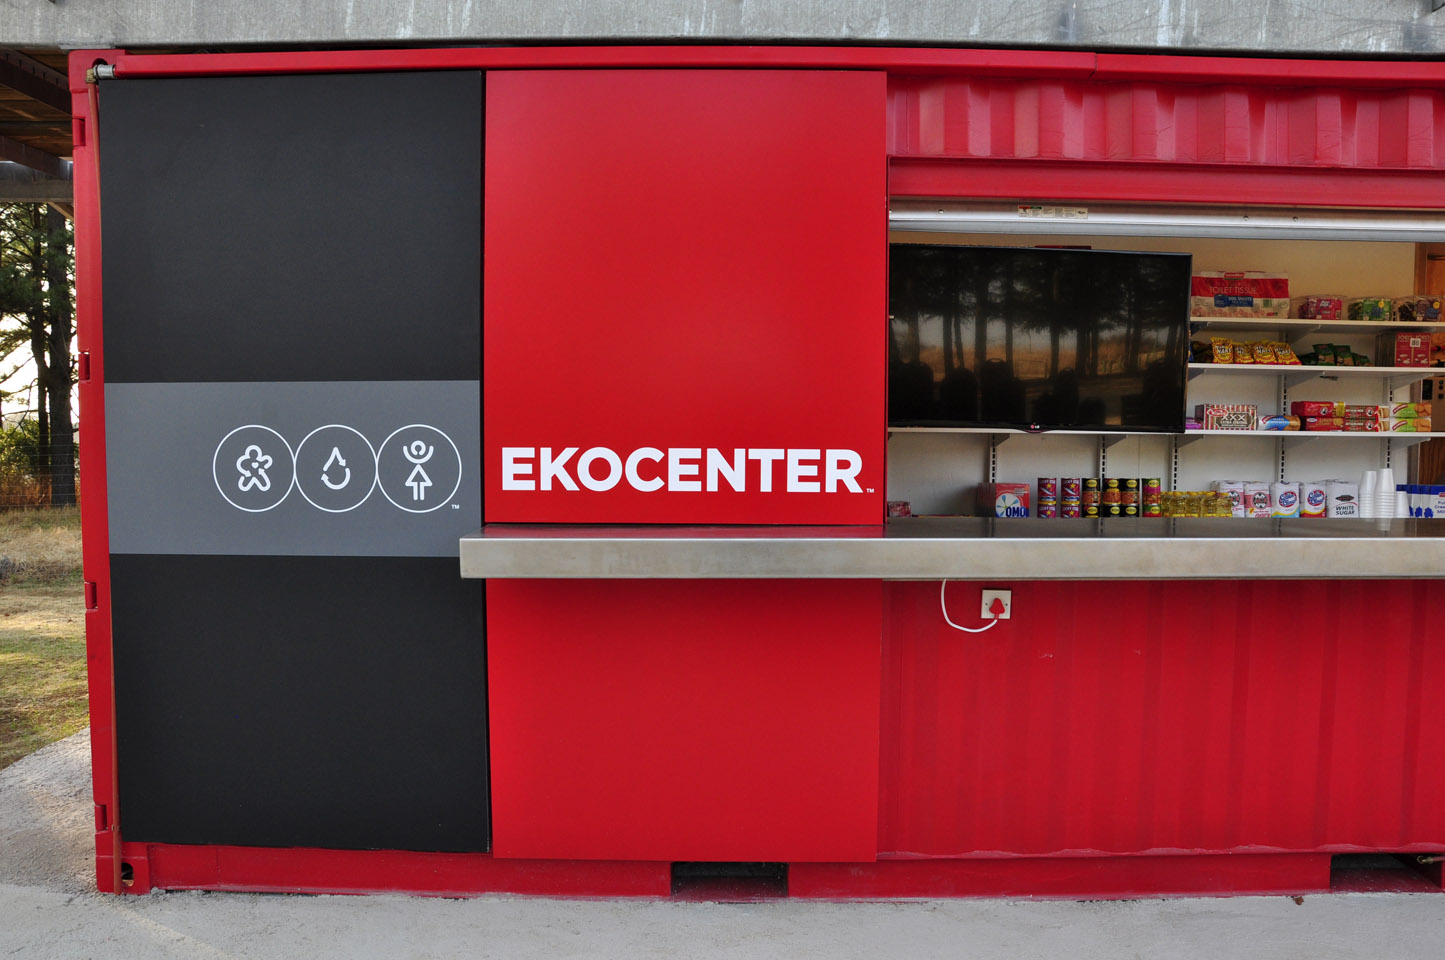 ekocenter-and-goods-sold